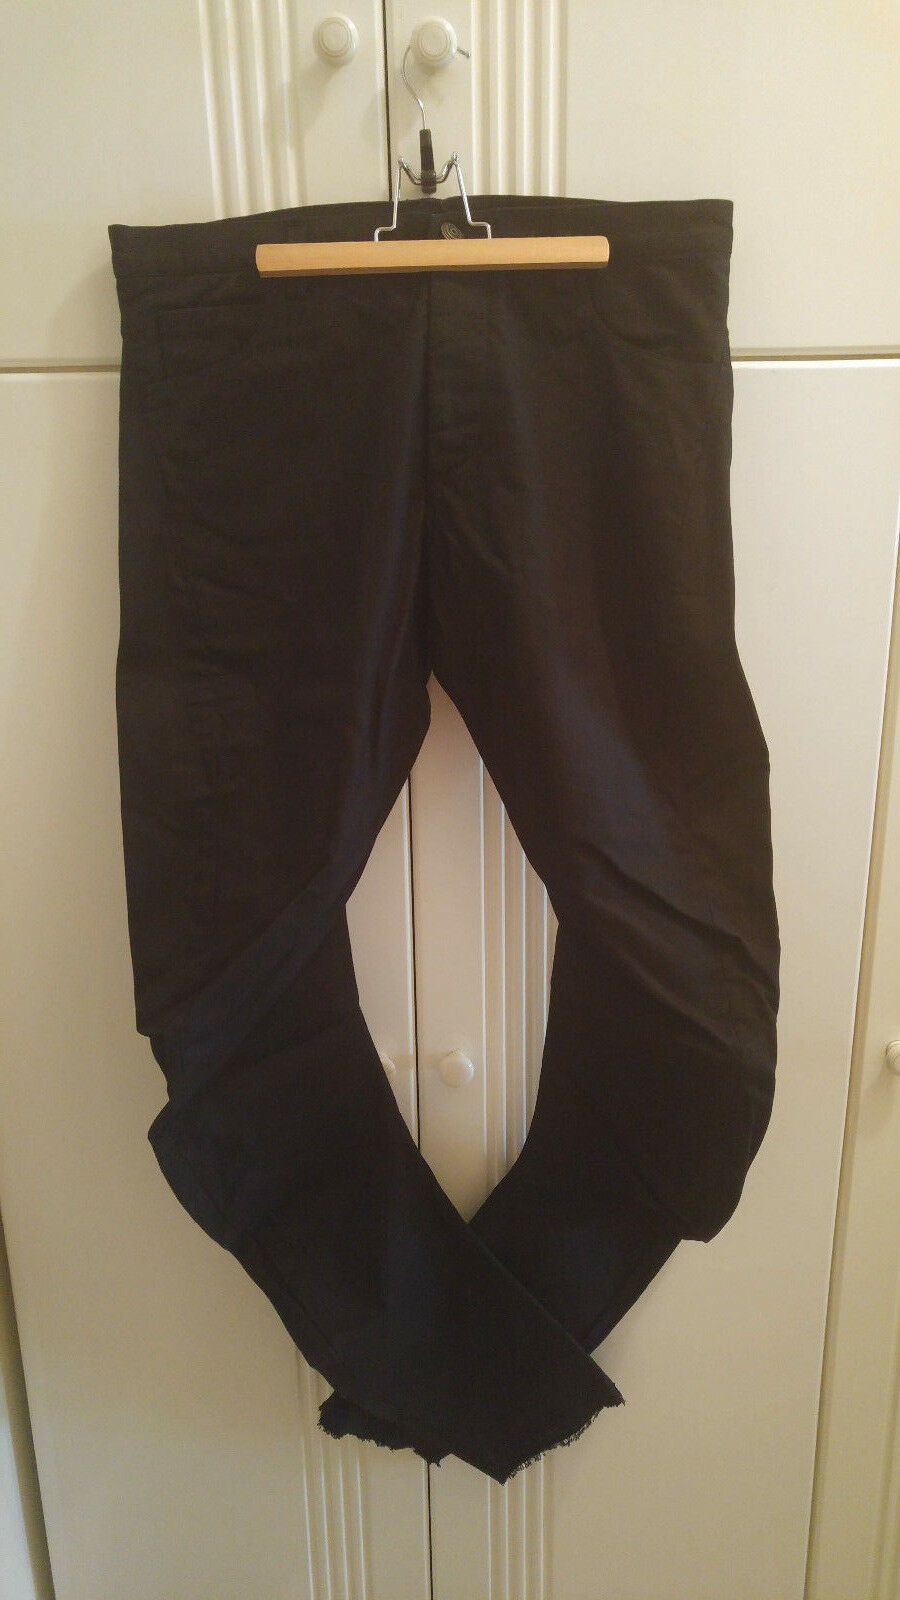 Zam Barrett schwarz DNA overdyed jeans 50